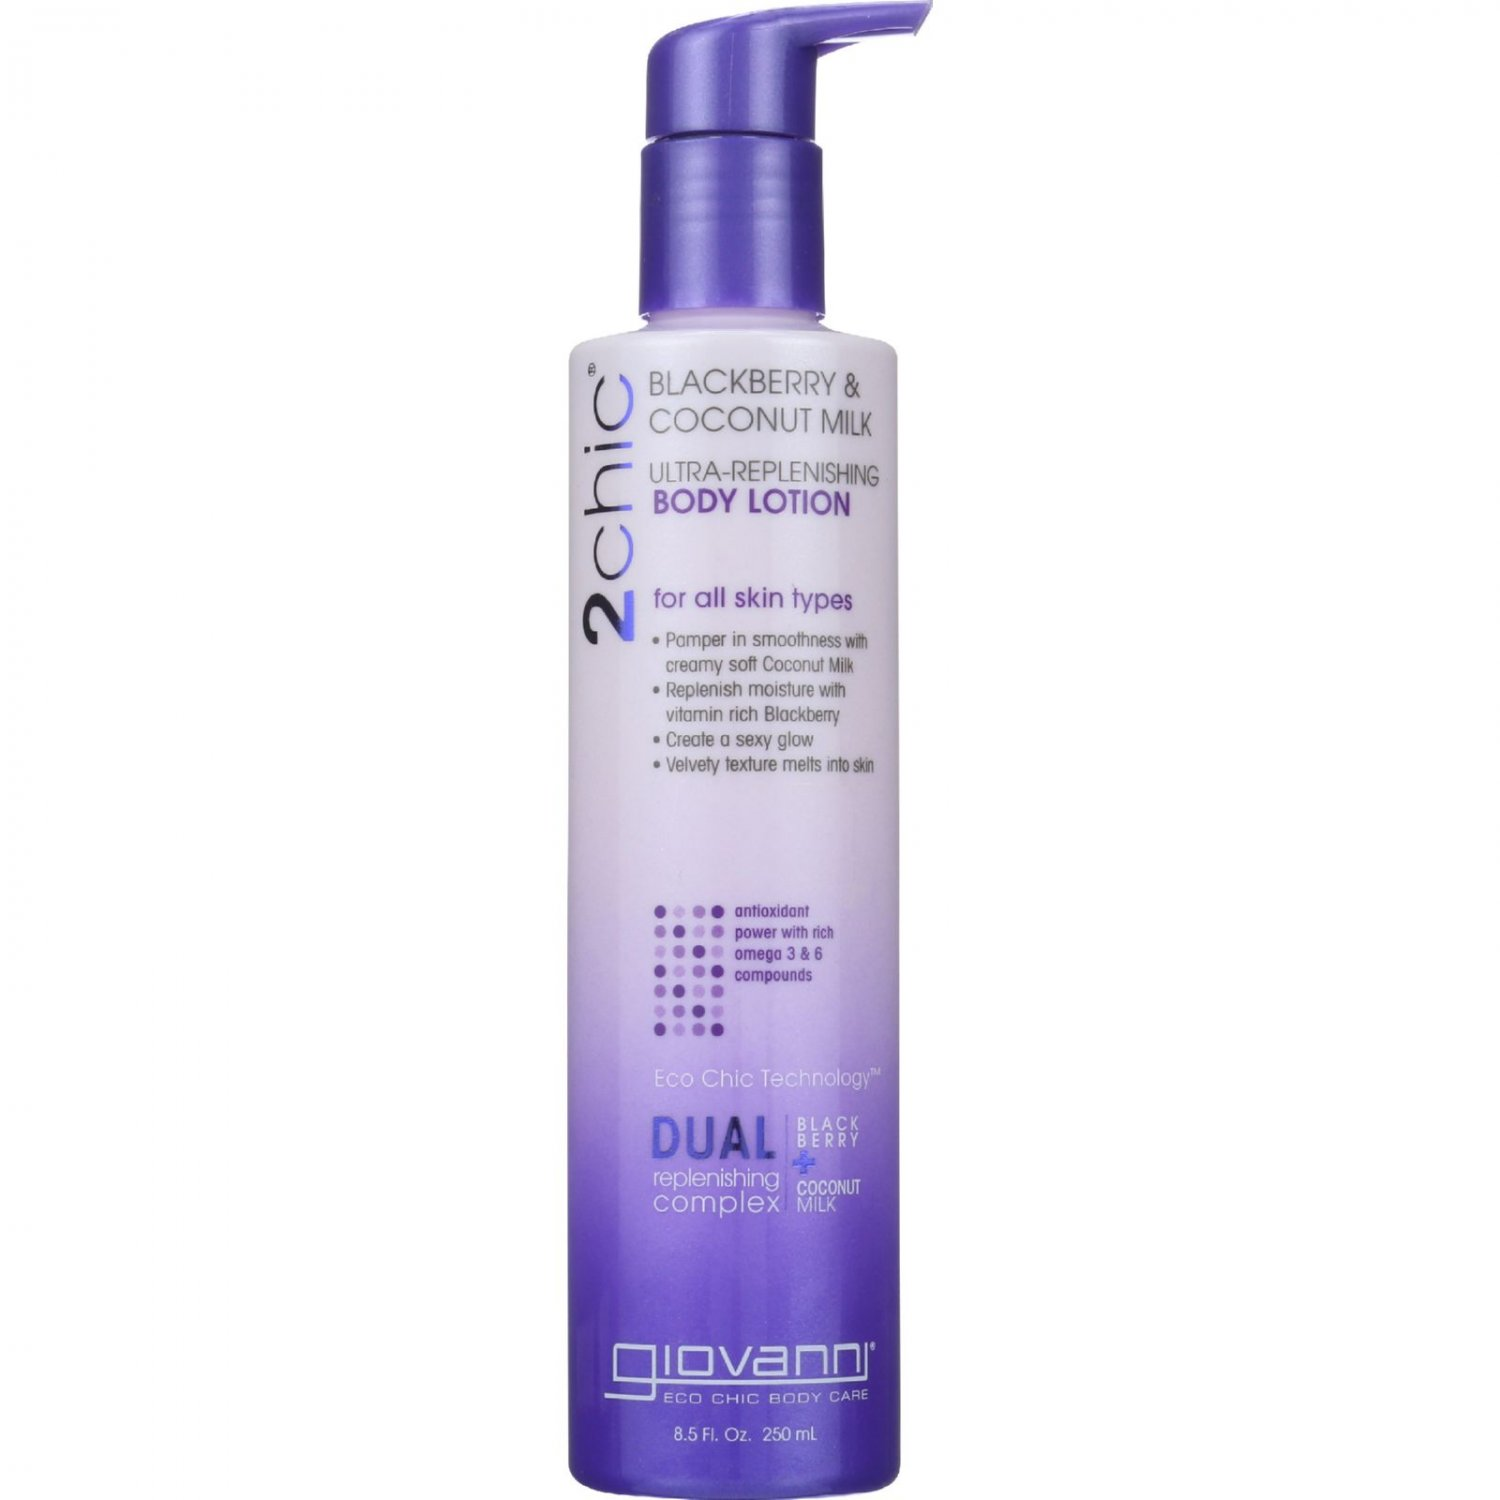 Giovanni Hair Care Products Lotion - 2Chic - Ultra-Replenishing - Blackberry and Coconut Milk - 8.5